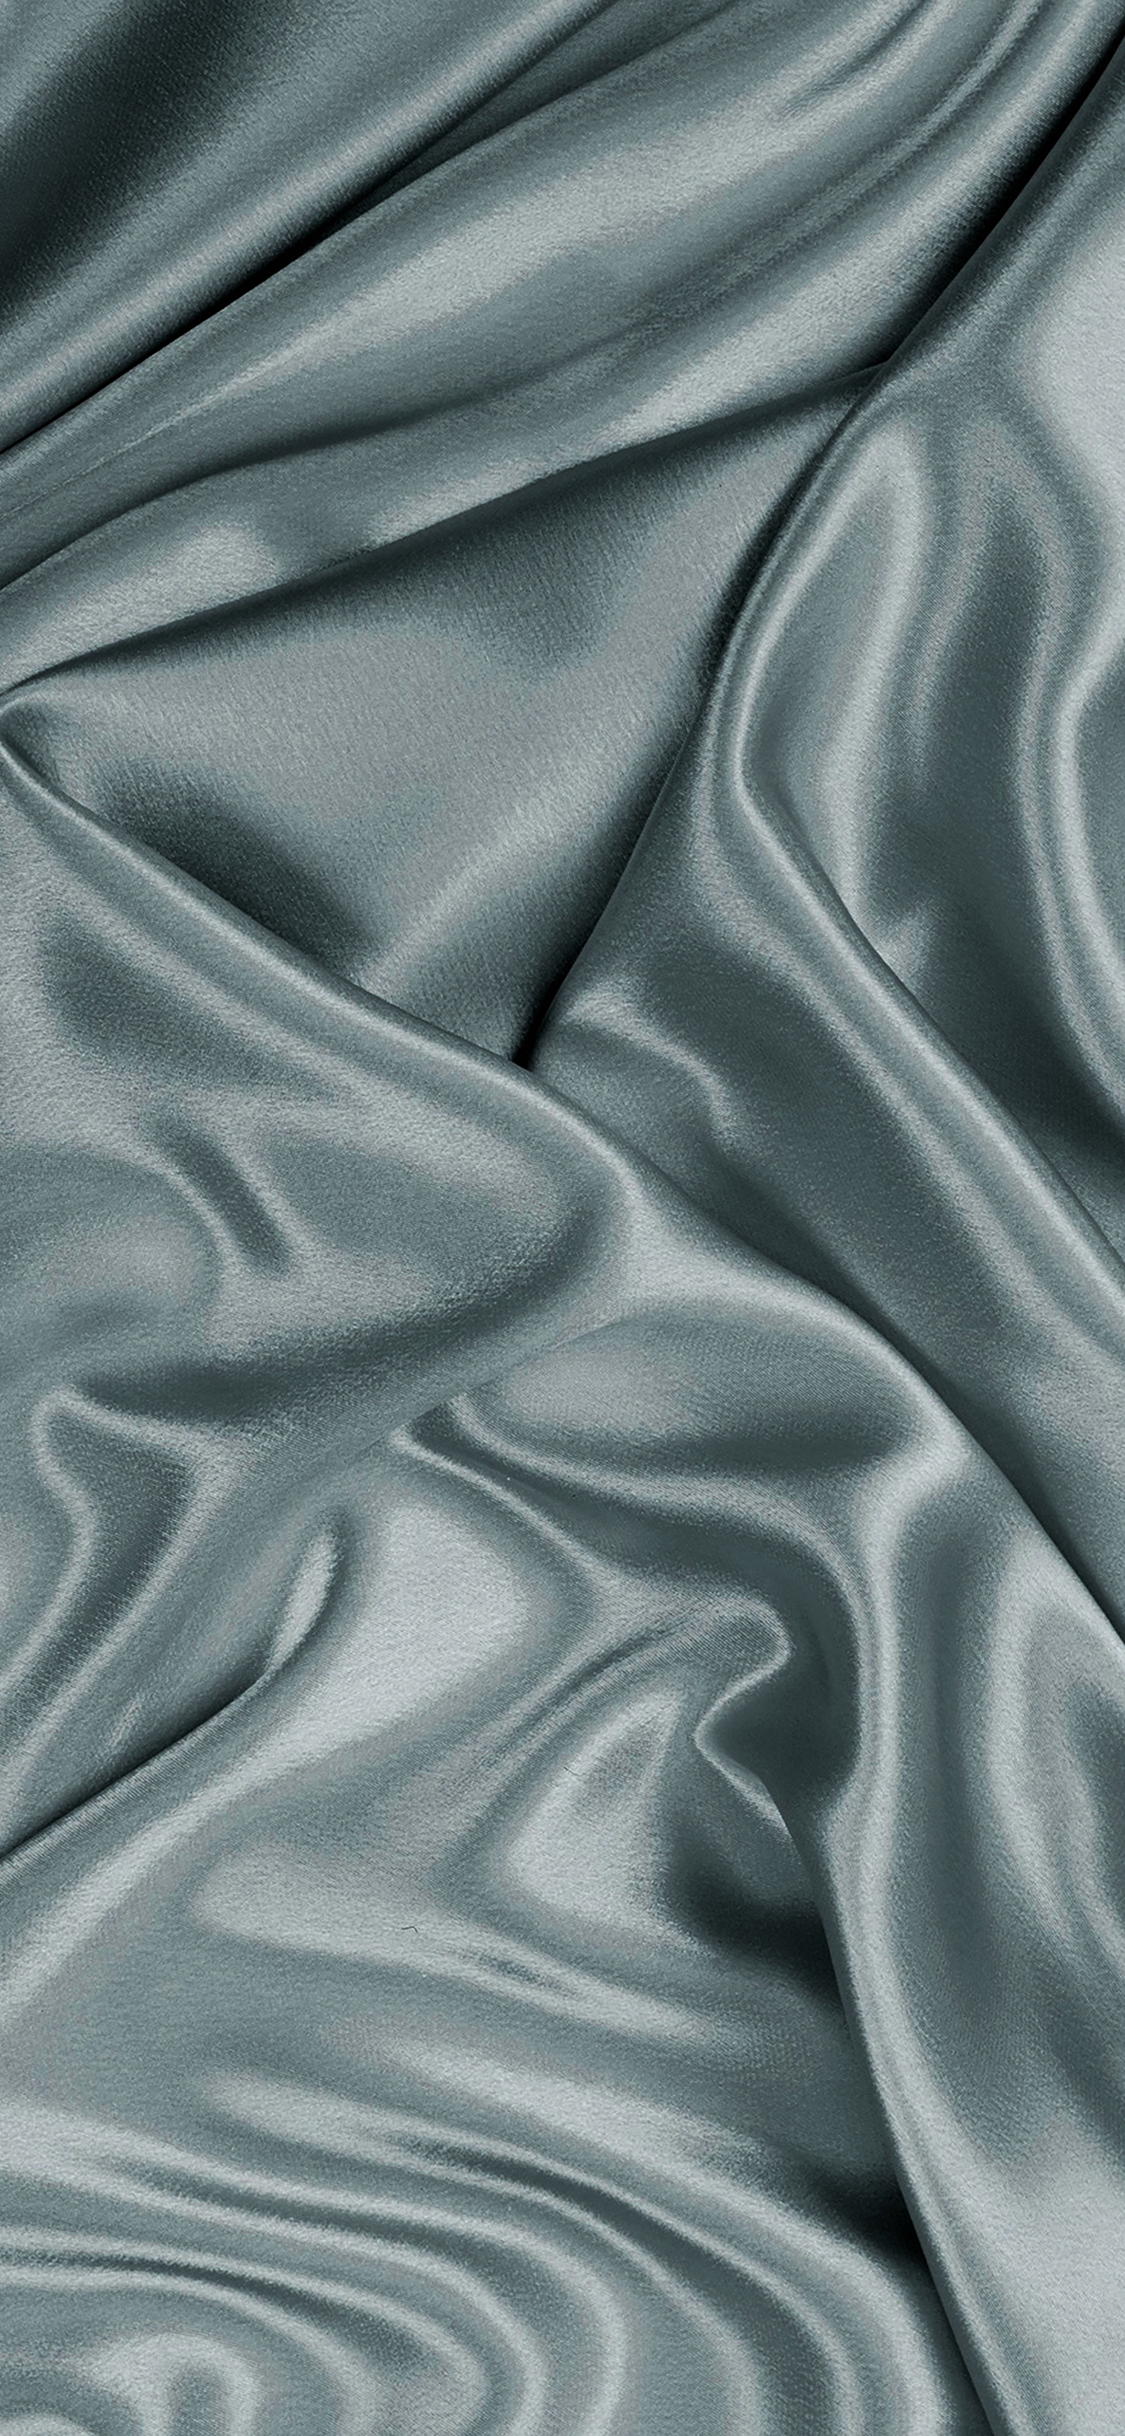 iPhoneXpapers.com-Apple-iPhone-wallpaper-vf25-fabric-texture-gray-pattern